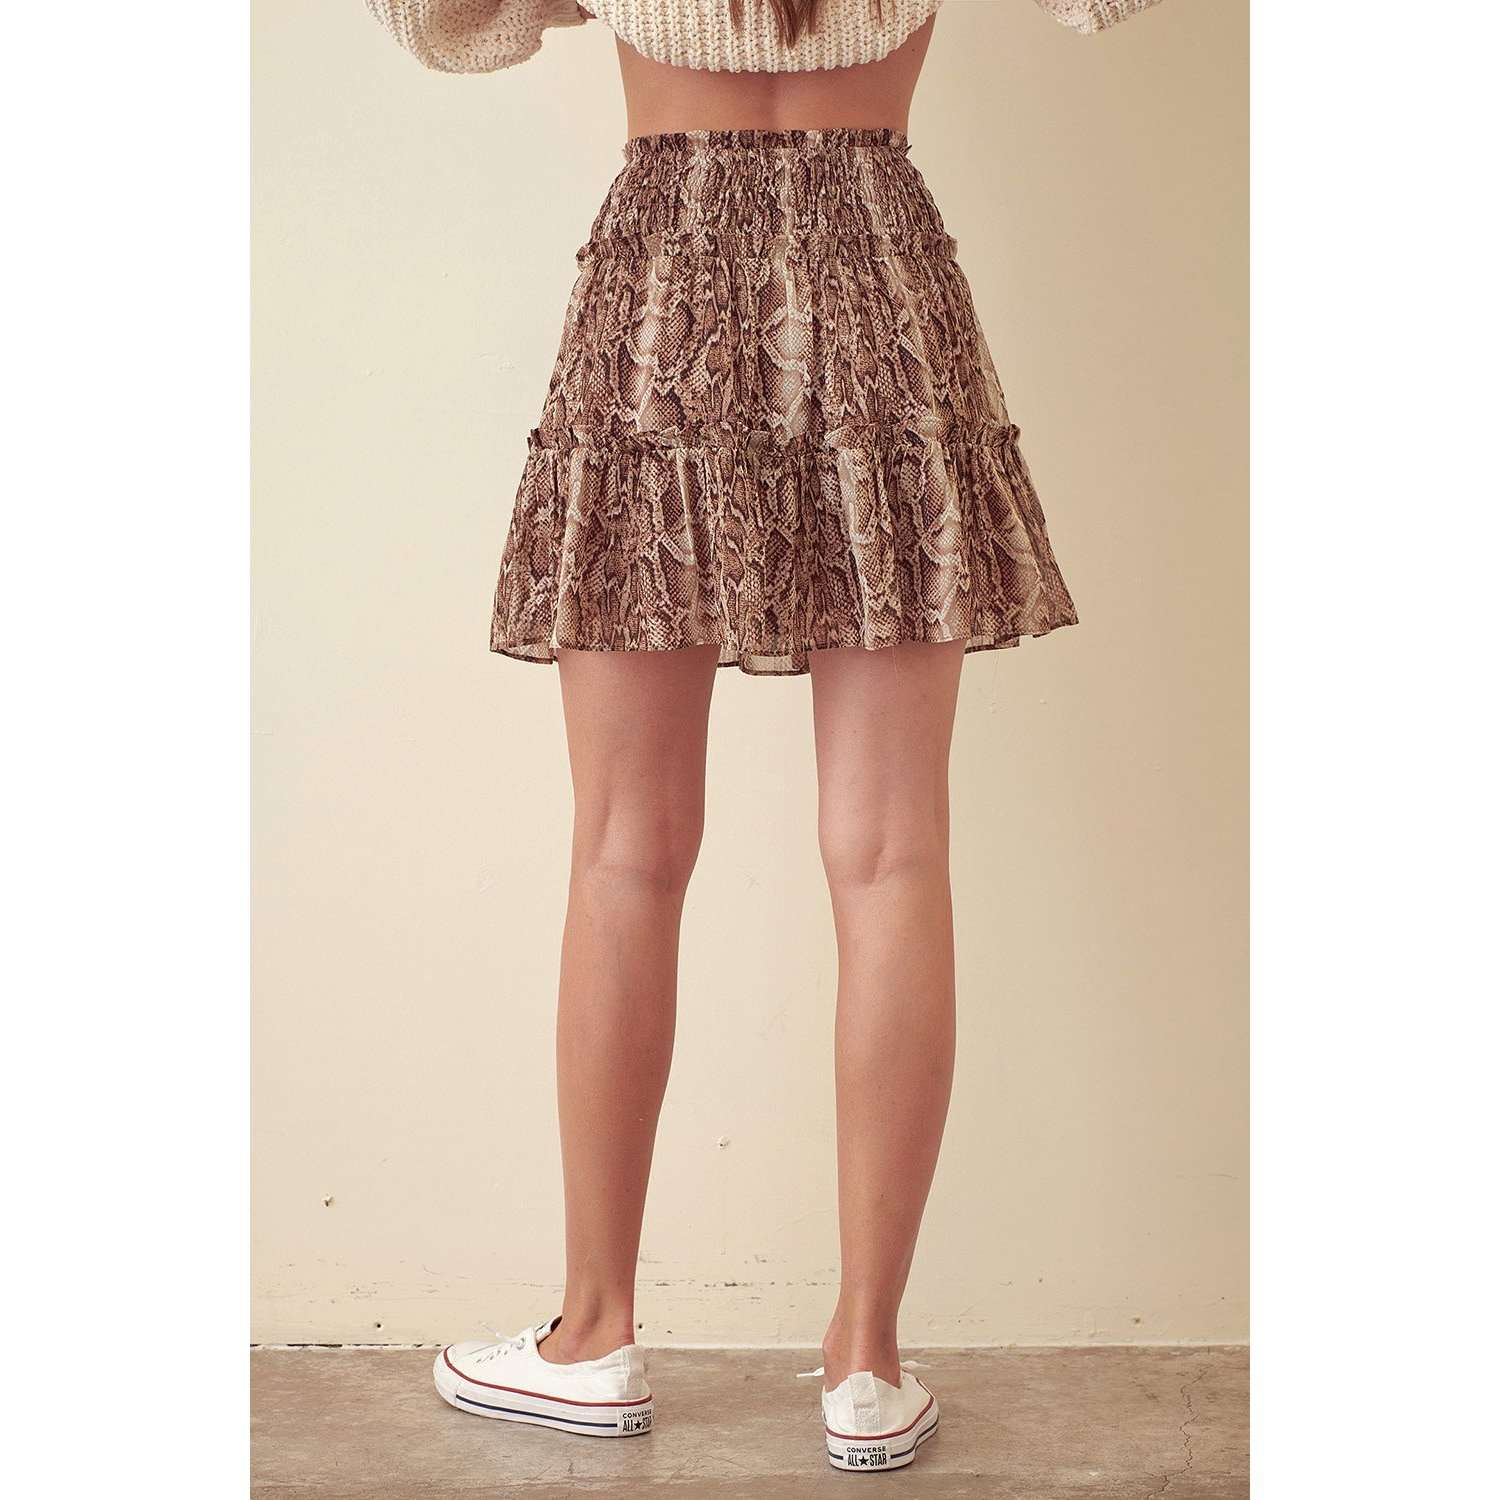 8.28 Boutique:Storia,Storia Snakeskin Ruffle Skirt,Bottoms